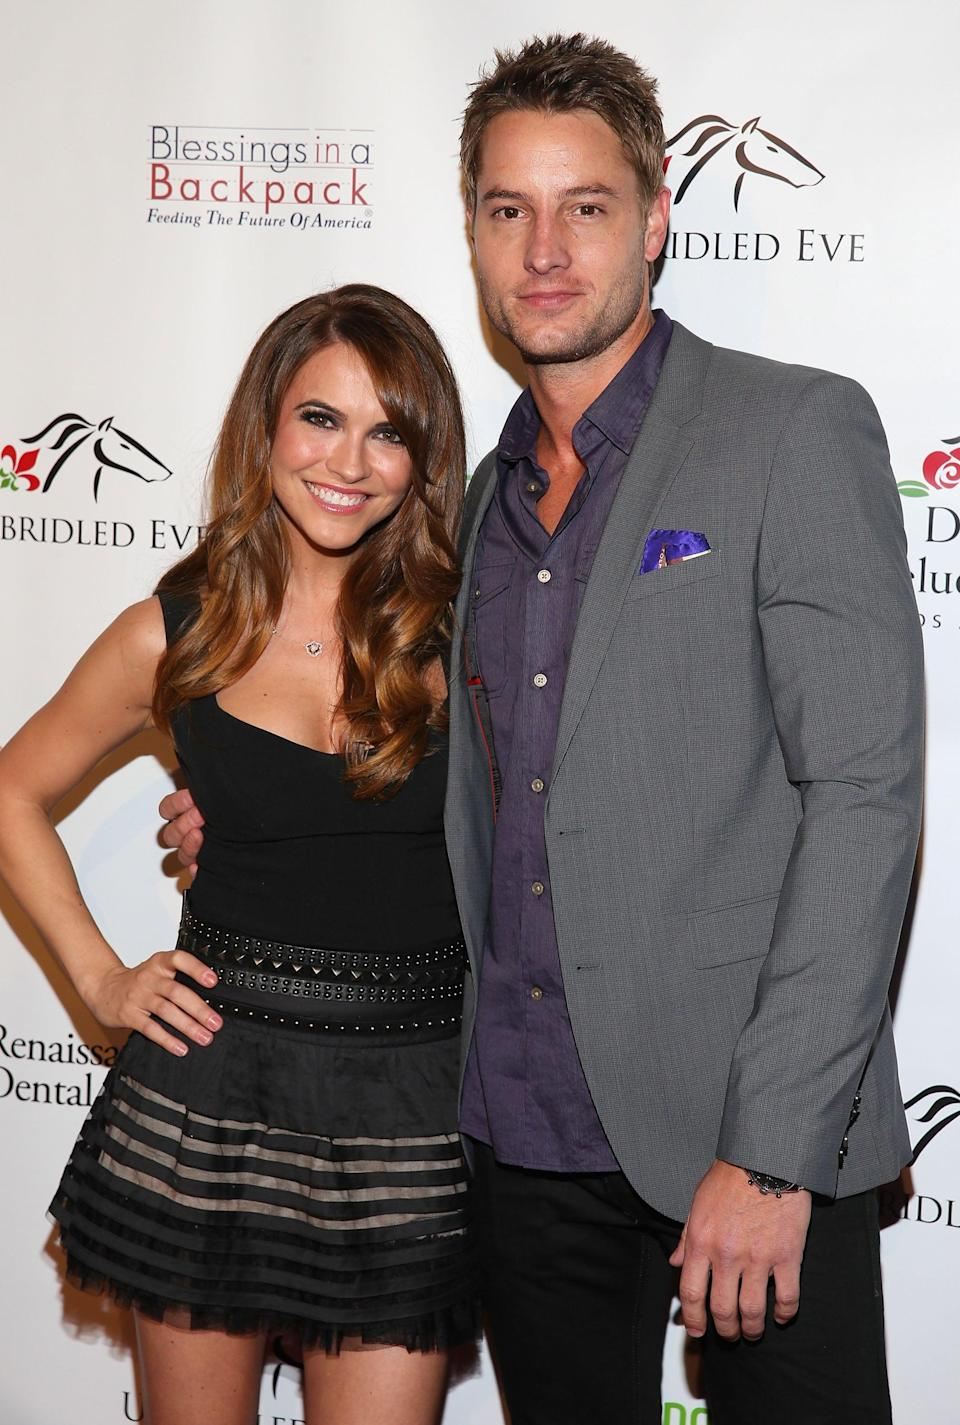 """<p>Though they technically met in passing early on in their soap opera careers, Chrishell and Justin didn't actually begin dating until late 2013 when <span>they were set up by a mutual friend</span>. </p> <p>""""We met up at a concert and talked all night,"""" Justin previously told <strong>People</strong>. """"I drove her home and called the next day. We haven't been apart since. I knew right away [and] was like, 'Oh boy, here we go.'"""" Chrishell expressed similar sentiments, adding, """"The next day I texted my friend: 'I found him.'"""" </p> <p>Three months later, they made their red carpet debut as a couple at the fifth annual Unbridled Eve Derby party in LA.</p>"""